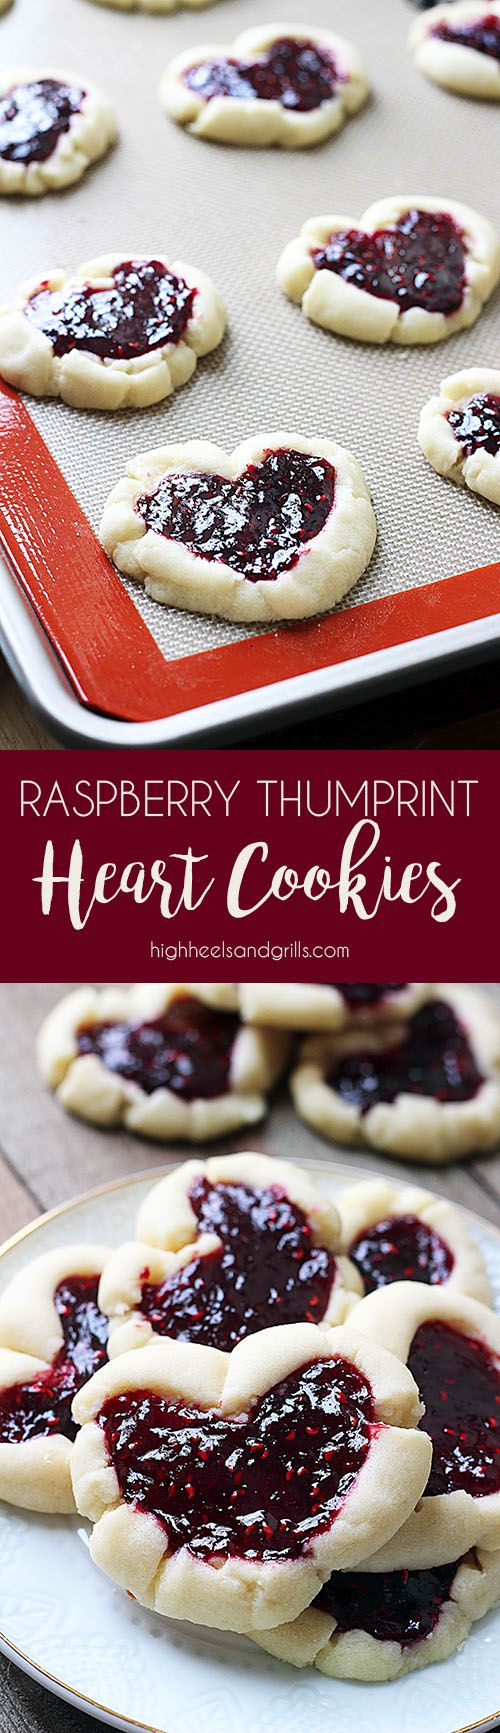 Raspberry Thumbprint Heart Cookies - Buttery, delicious, and so easy to make. Would be great for Valentine's Day!